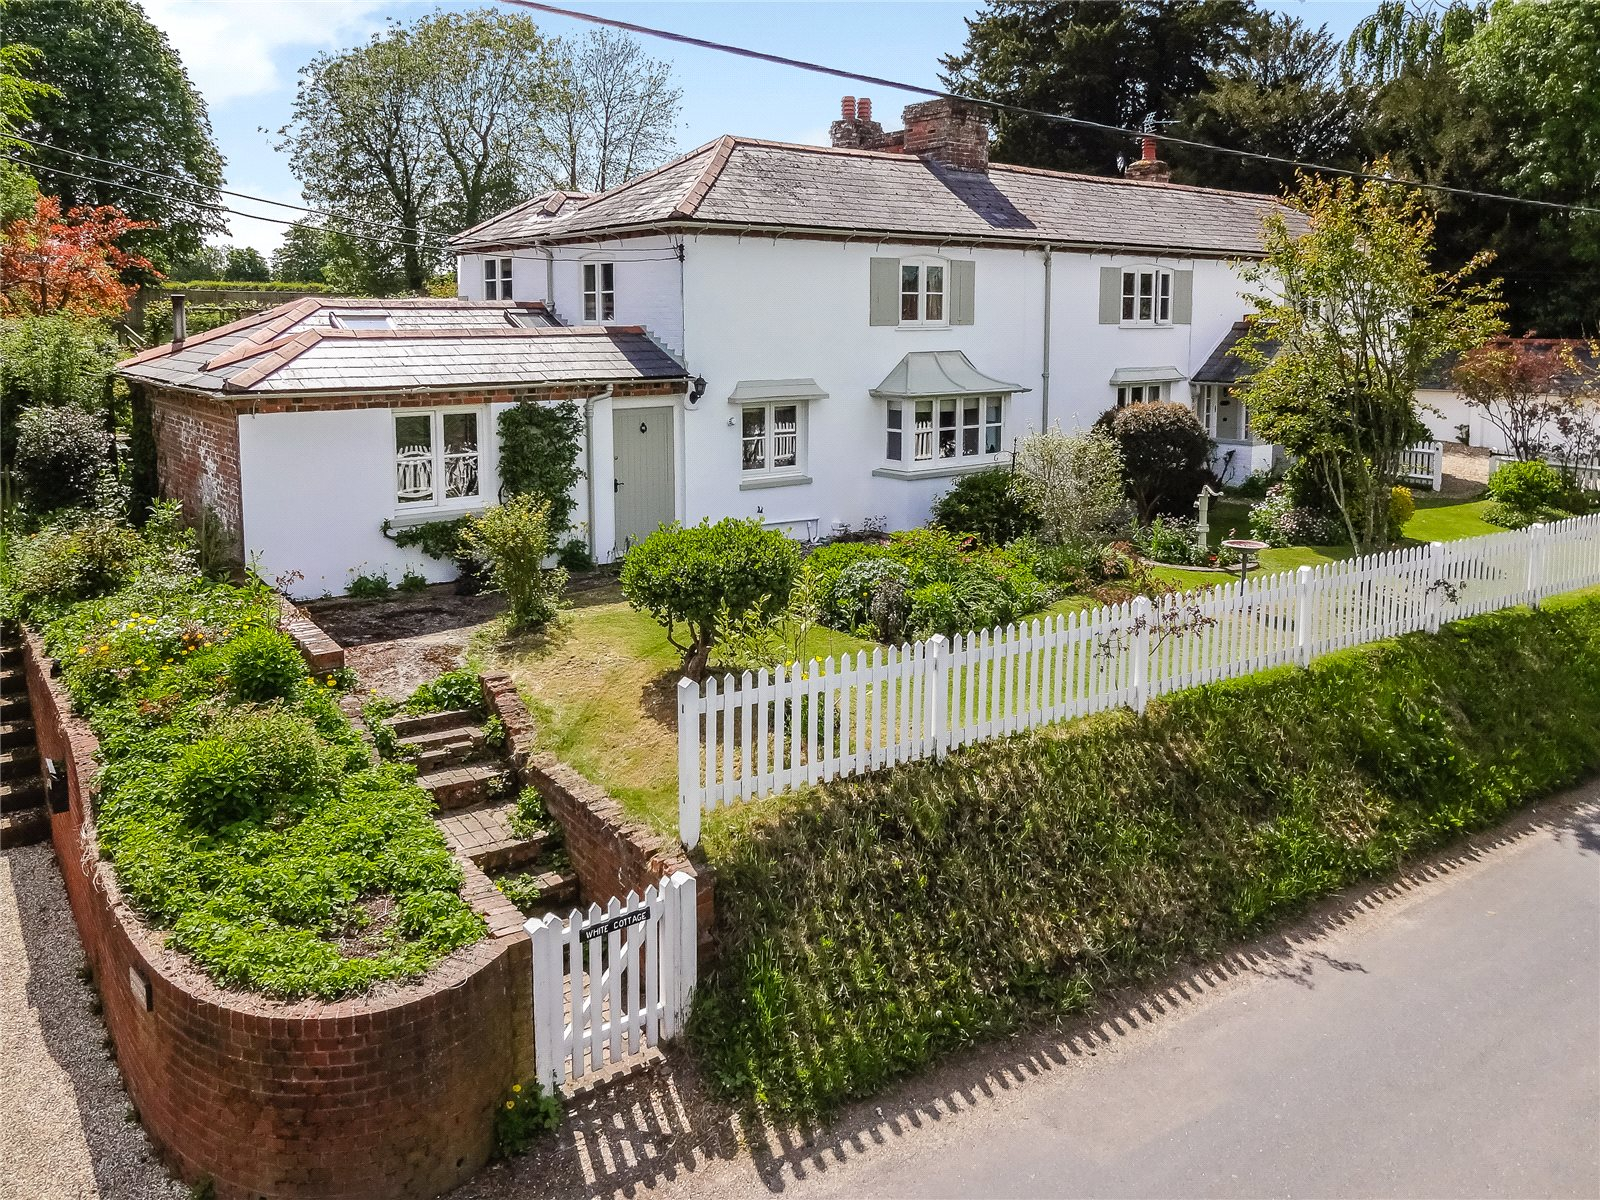 Additional photo for property listing at Rectory Road, Oakley, Basingstoke, Hampshire, RG23 Basingstoke, Anh Quốc